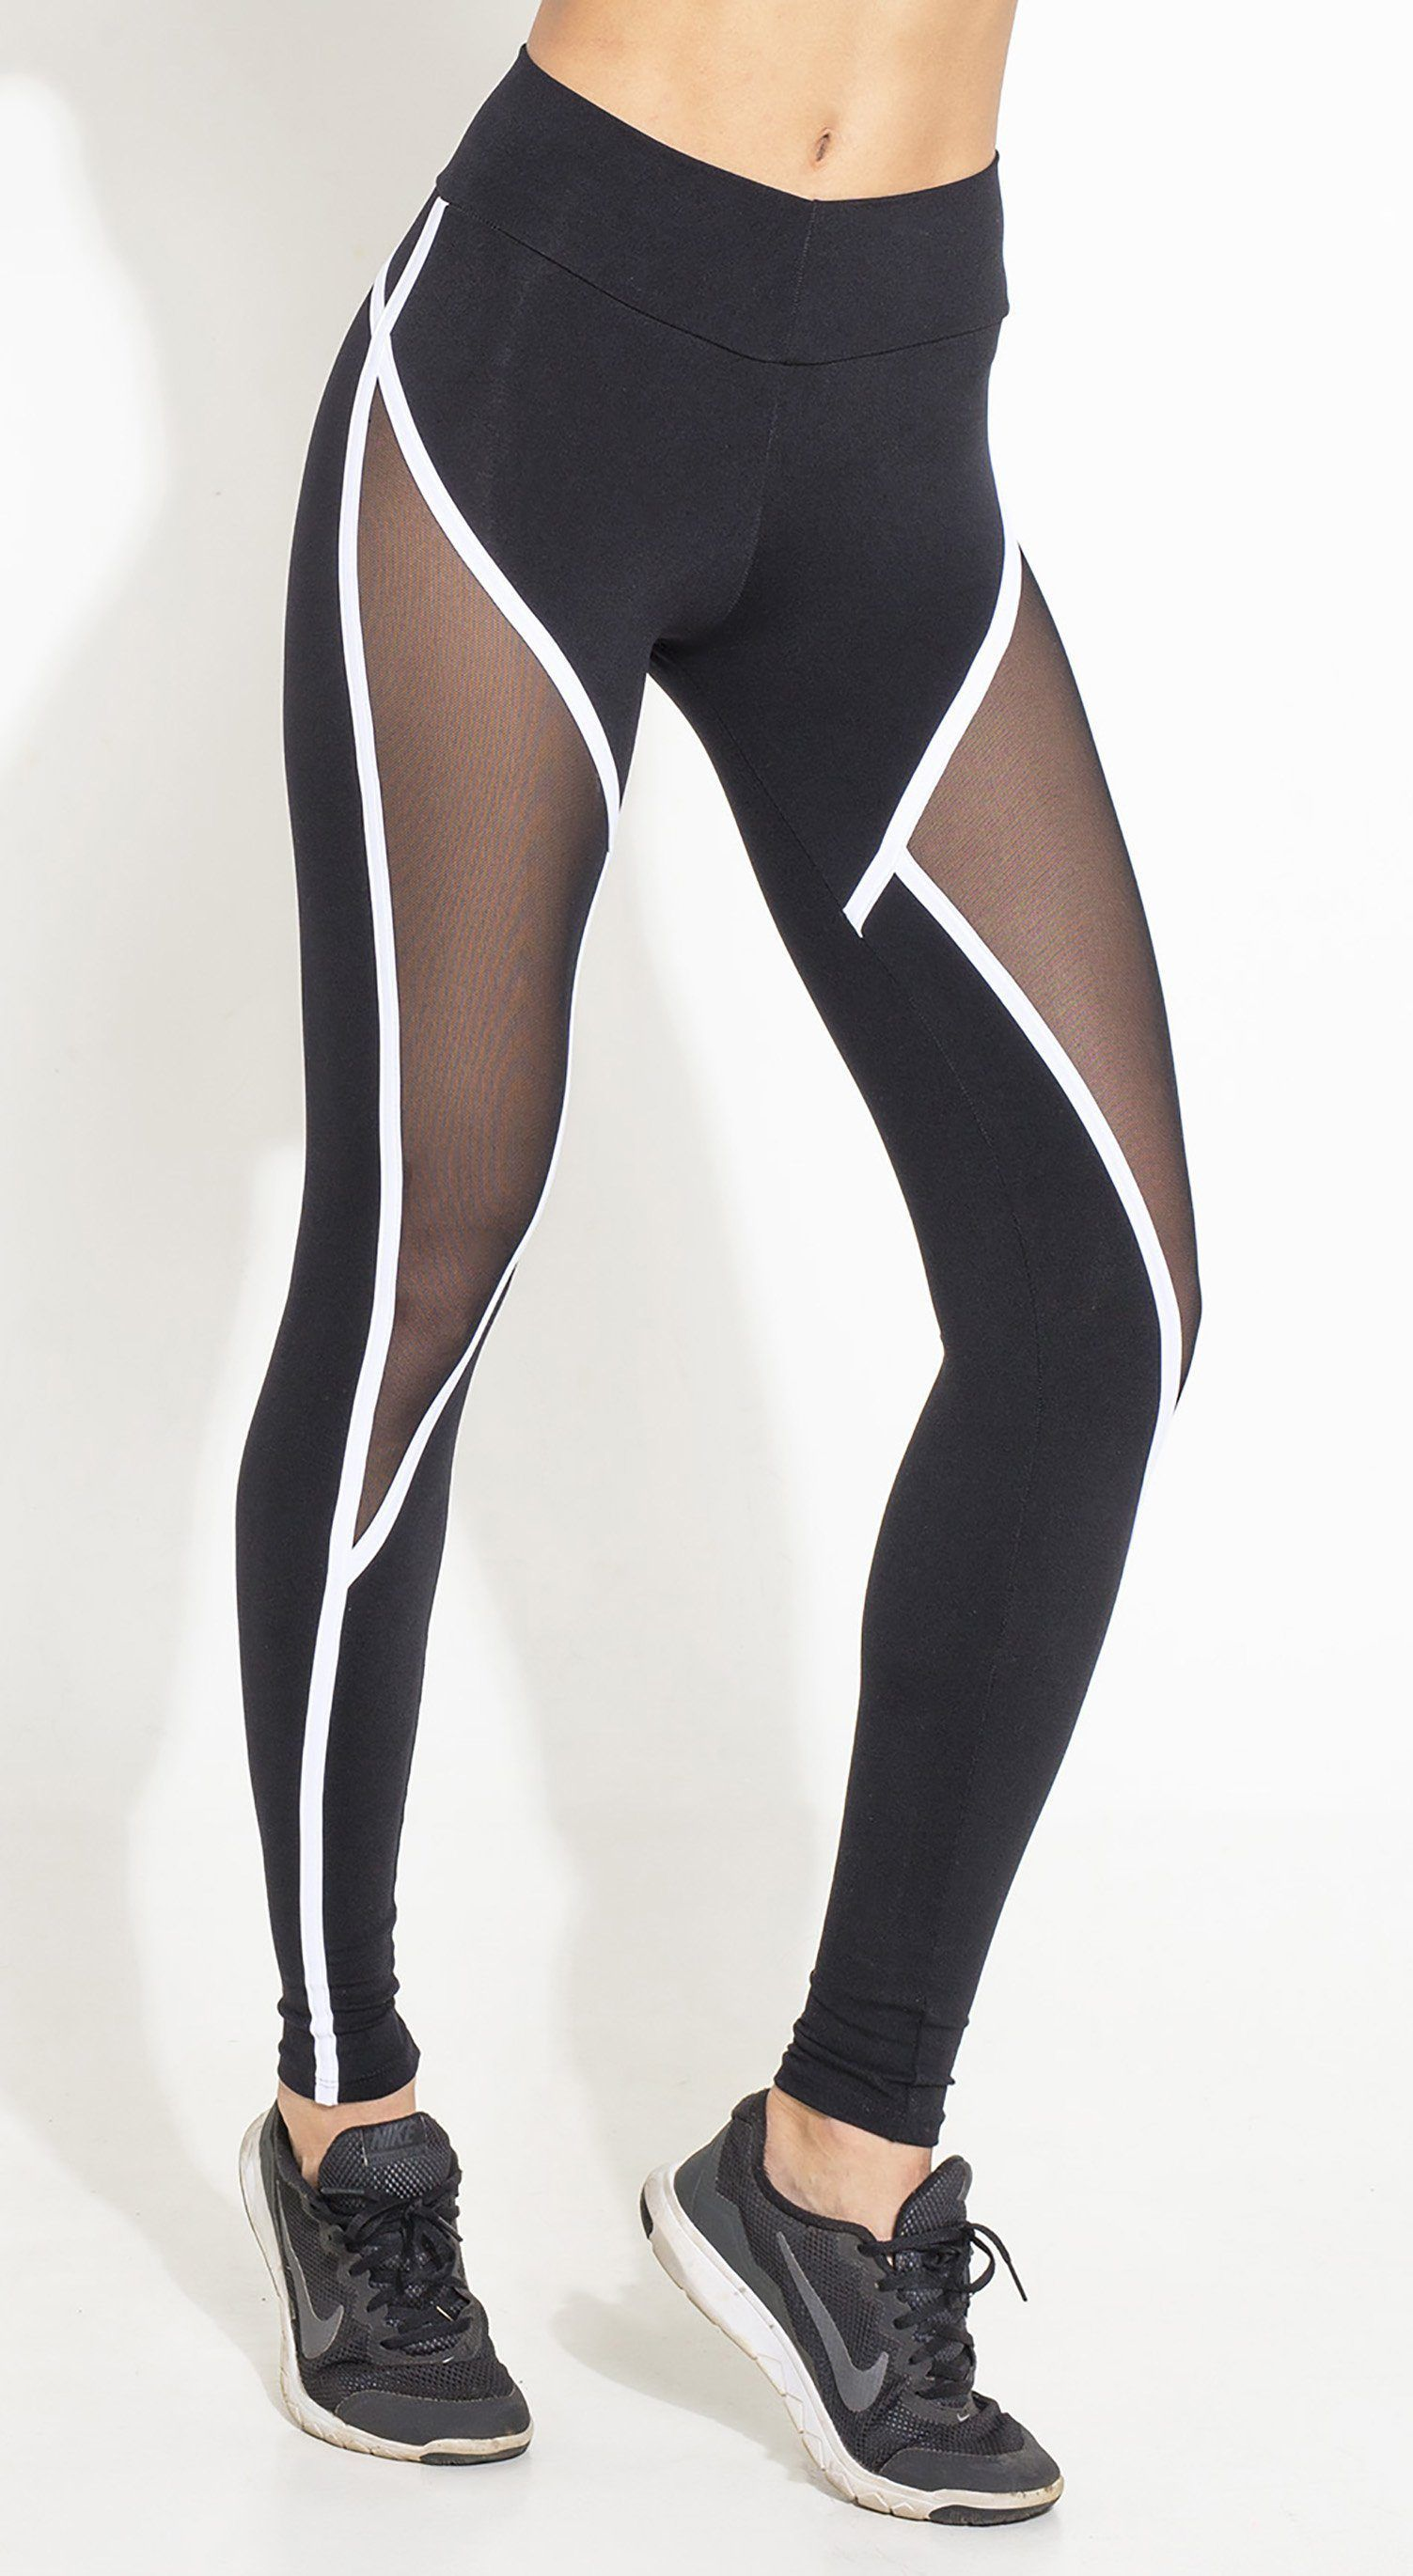 bc2c815f59a03 Brazilian Workout Legging - Scrunch Booty Move Mesh Black - Top Rio Shop